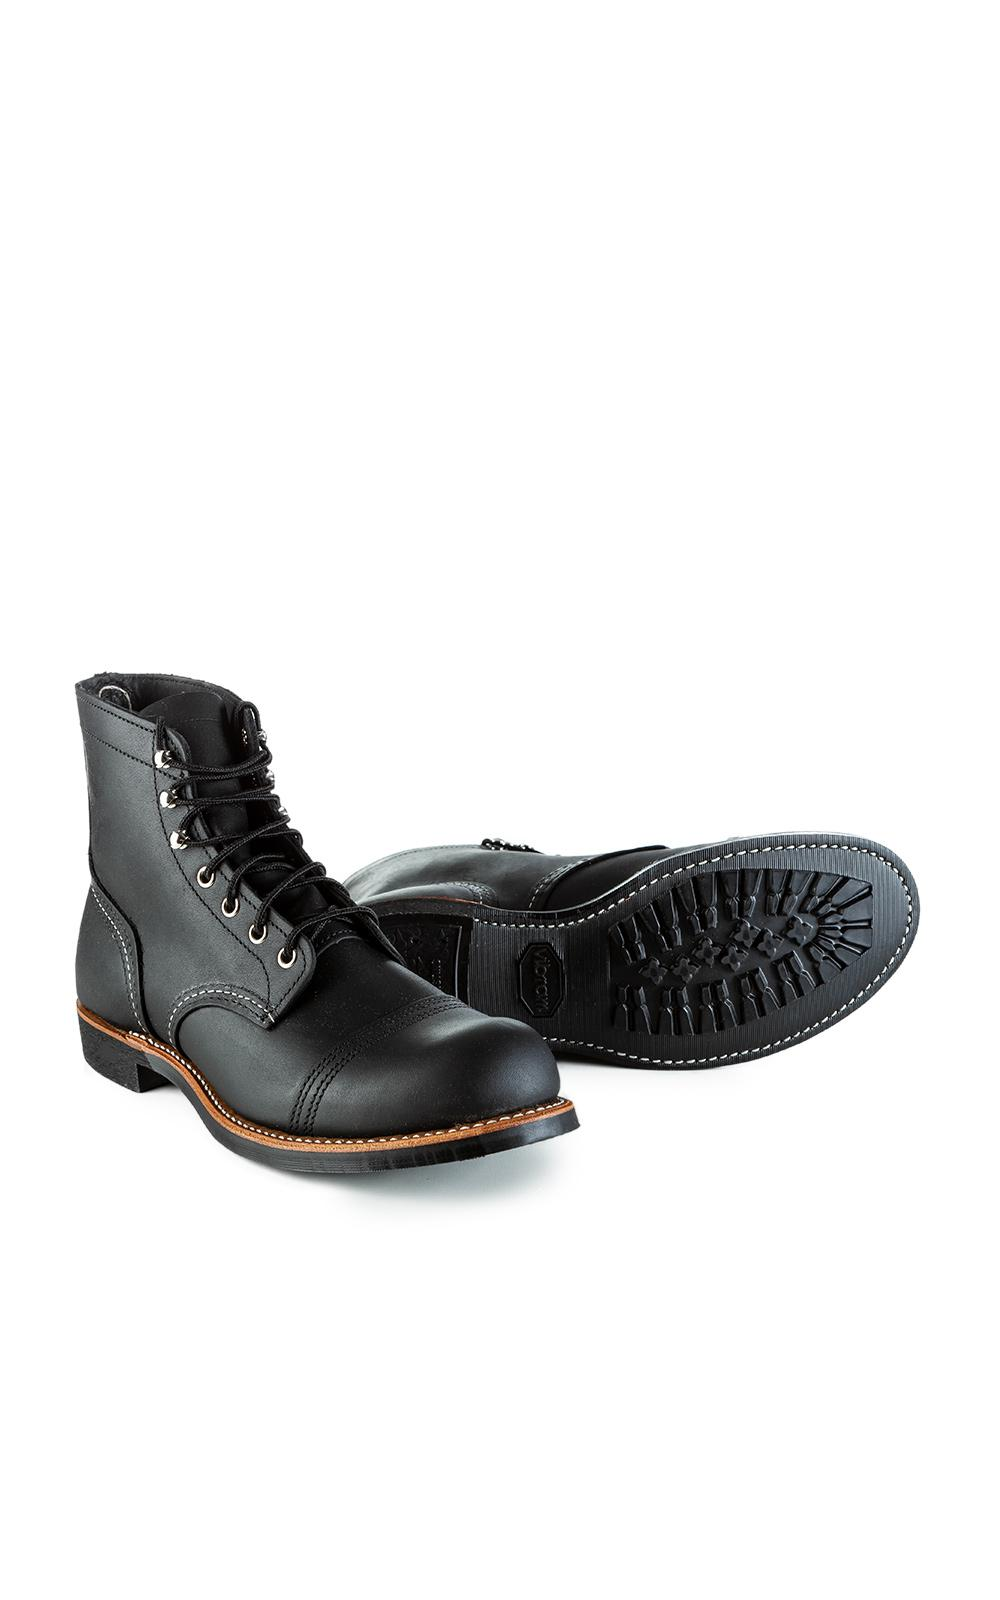 Red Wing 8084d Iron Ranger Black Harness In For Men Save Cut Engineer Shoes Safety Boots Suede Leather View Fullscreen